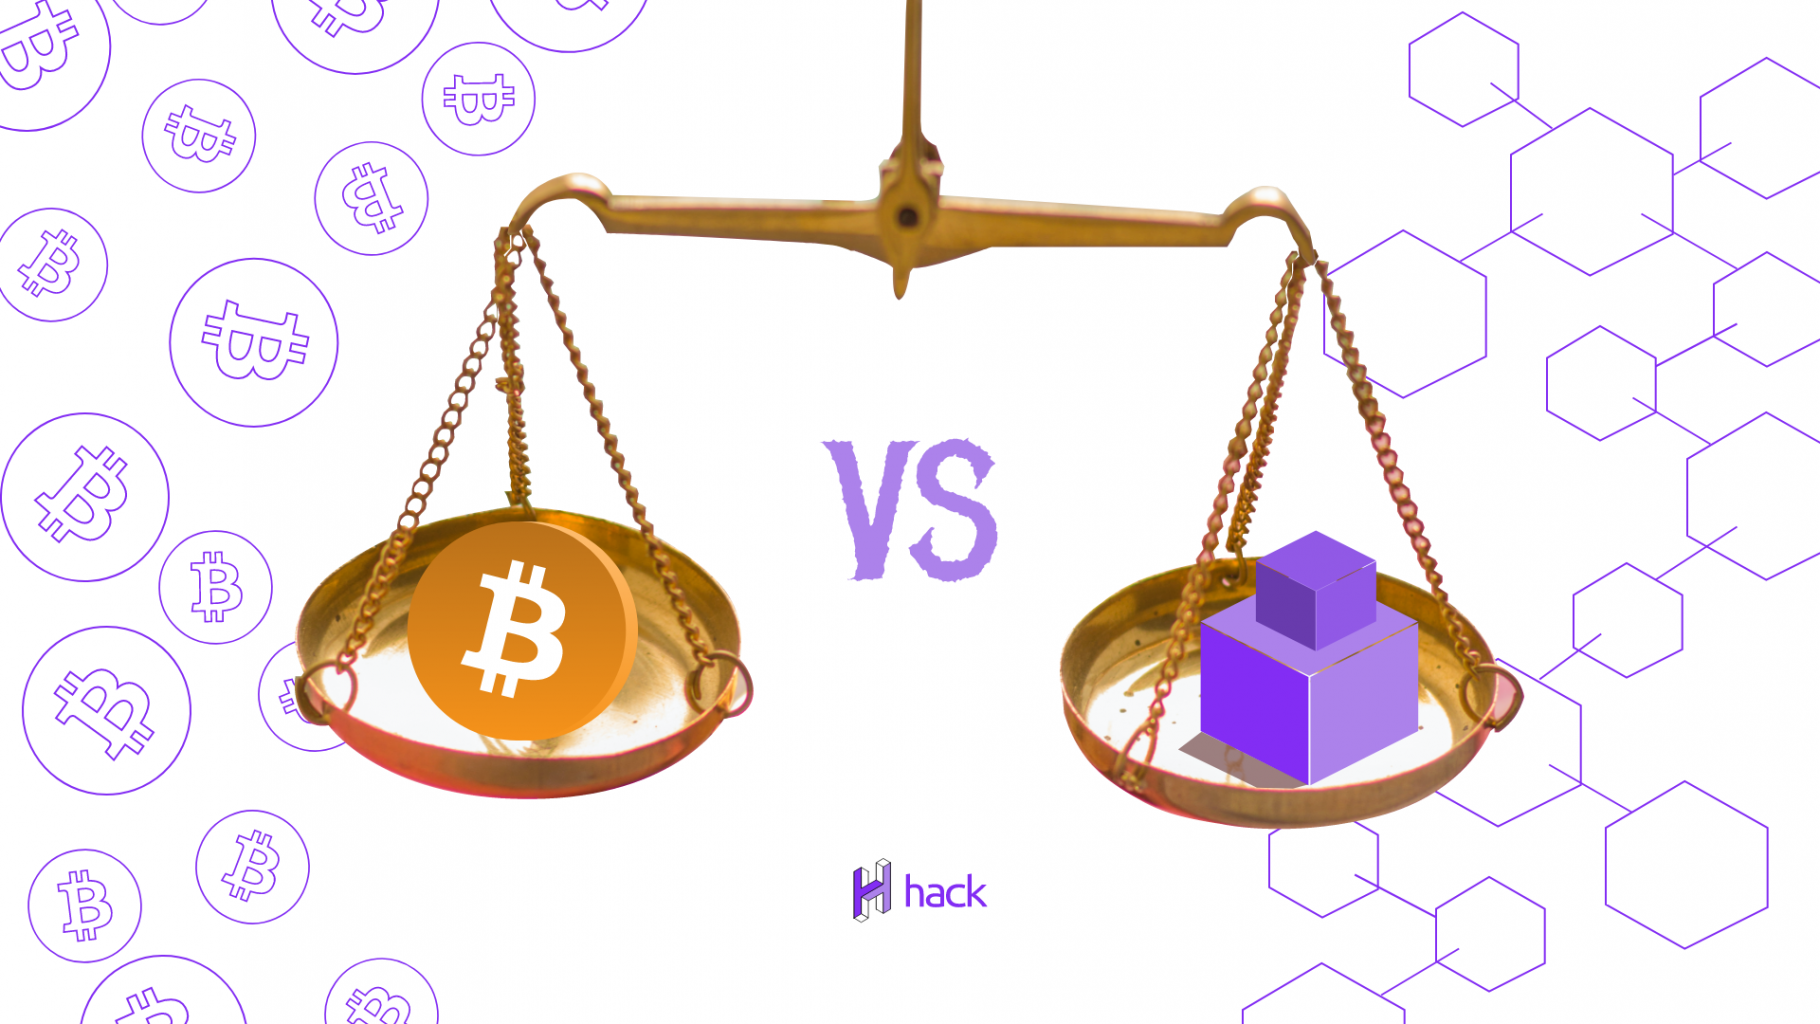 What matters more: Blockchain or Bitcoin? 1